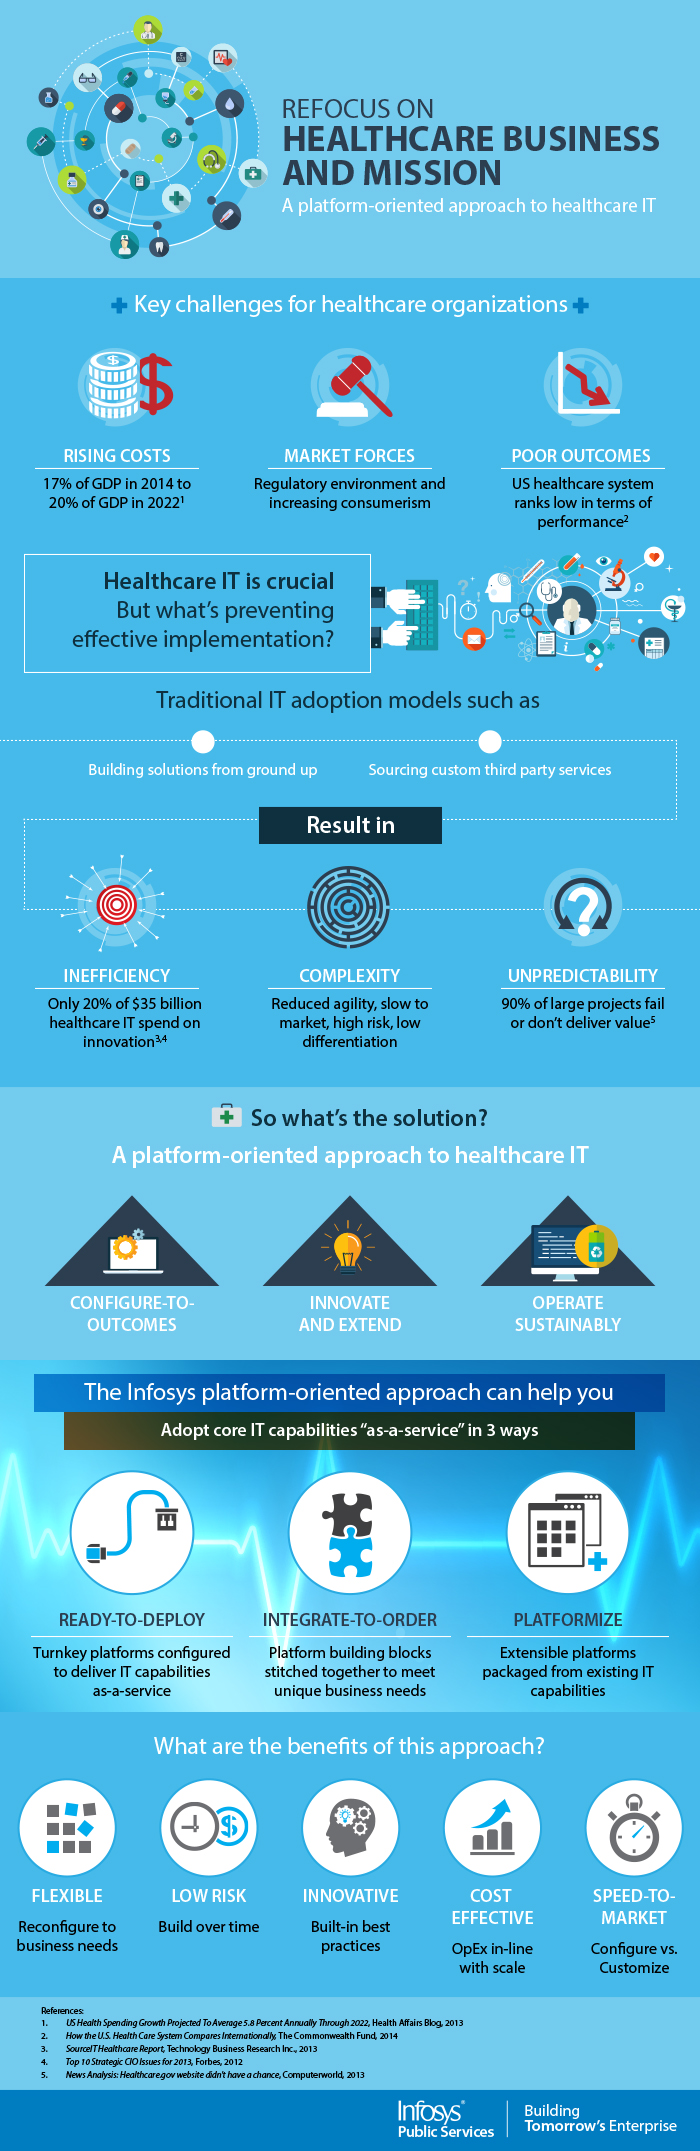 Shifting focus back to healthcare from IT: A new approach to healthcare IT